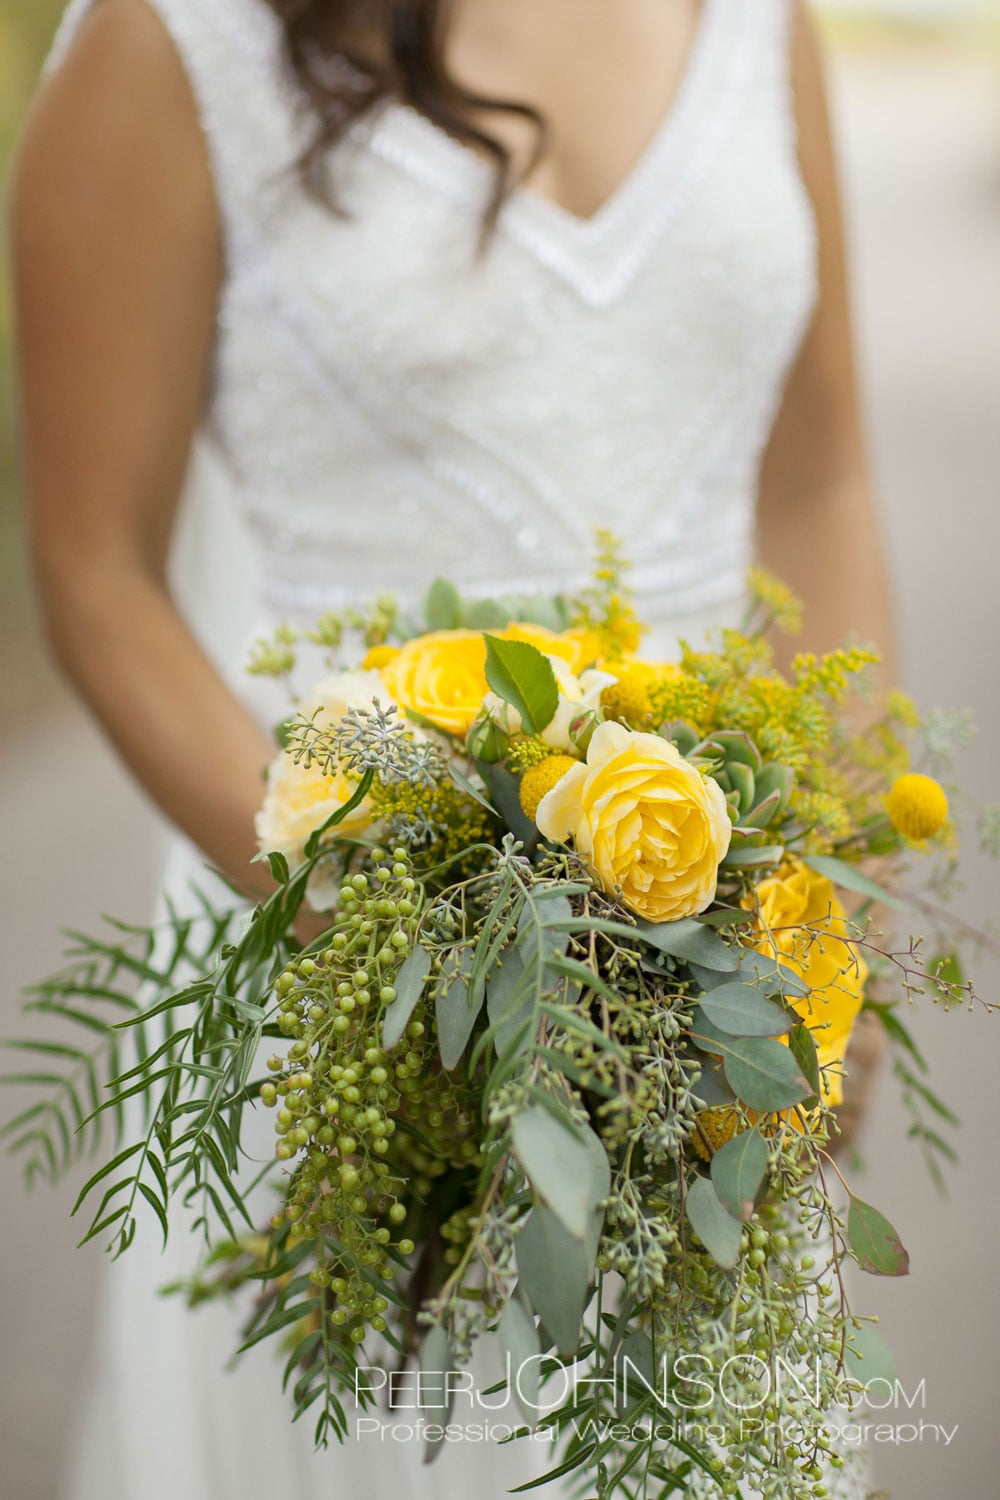 Bridal Bouquet with Yellow Roses and Wildflowers by Kate Healey